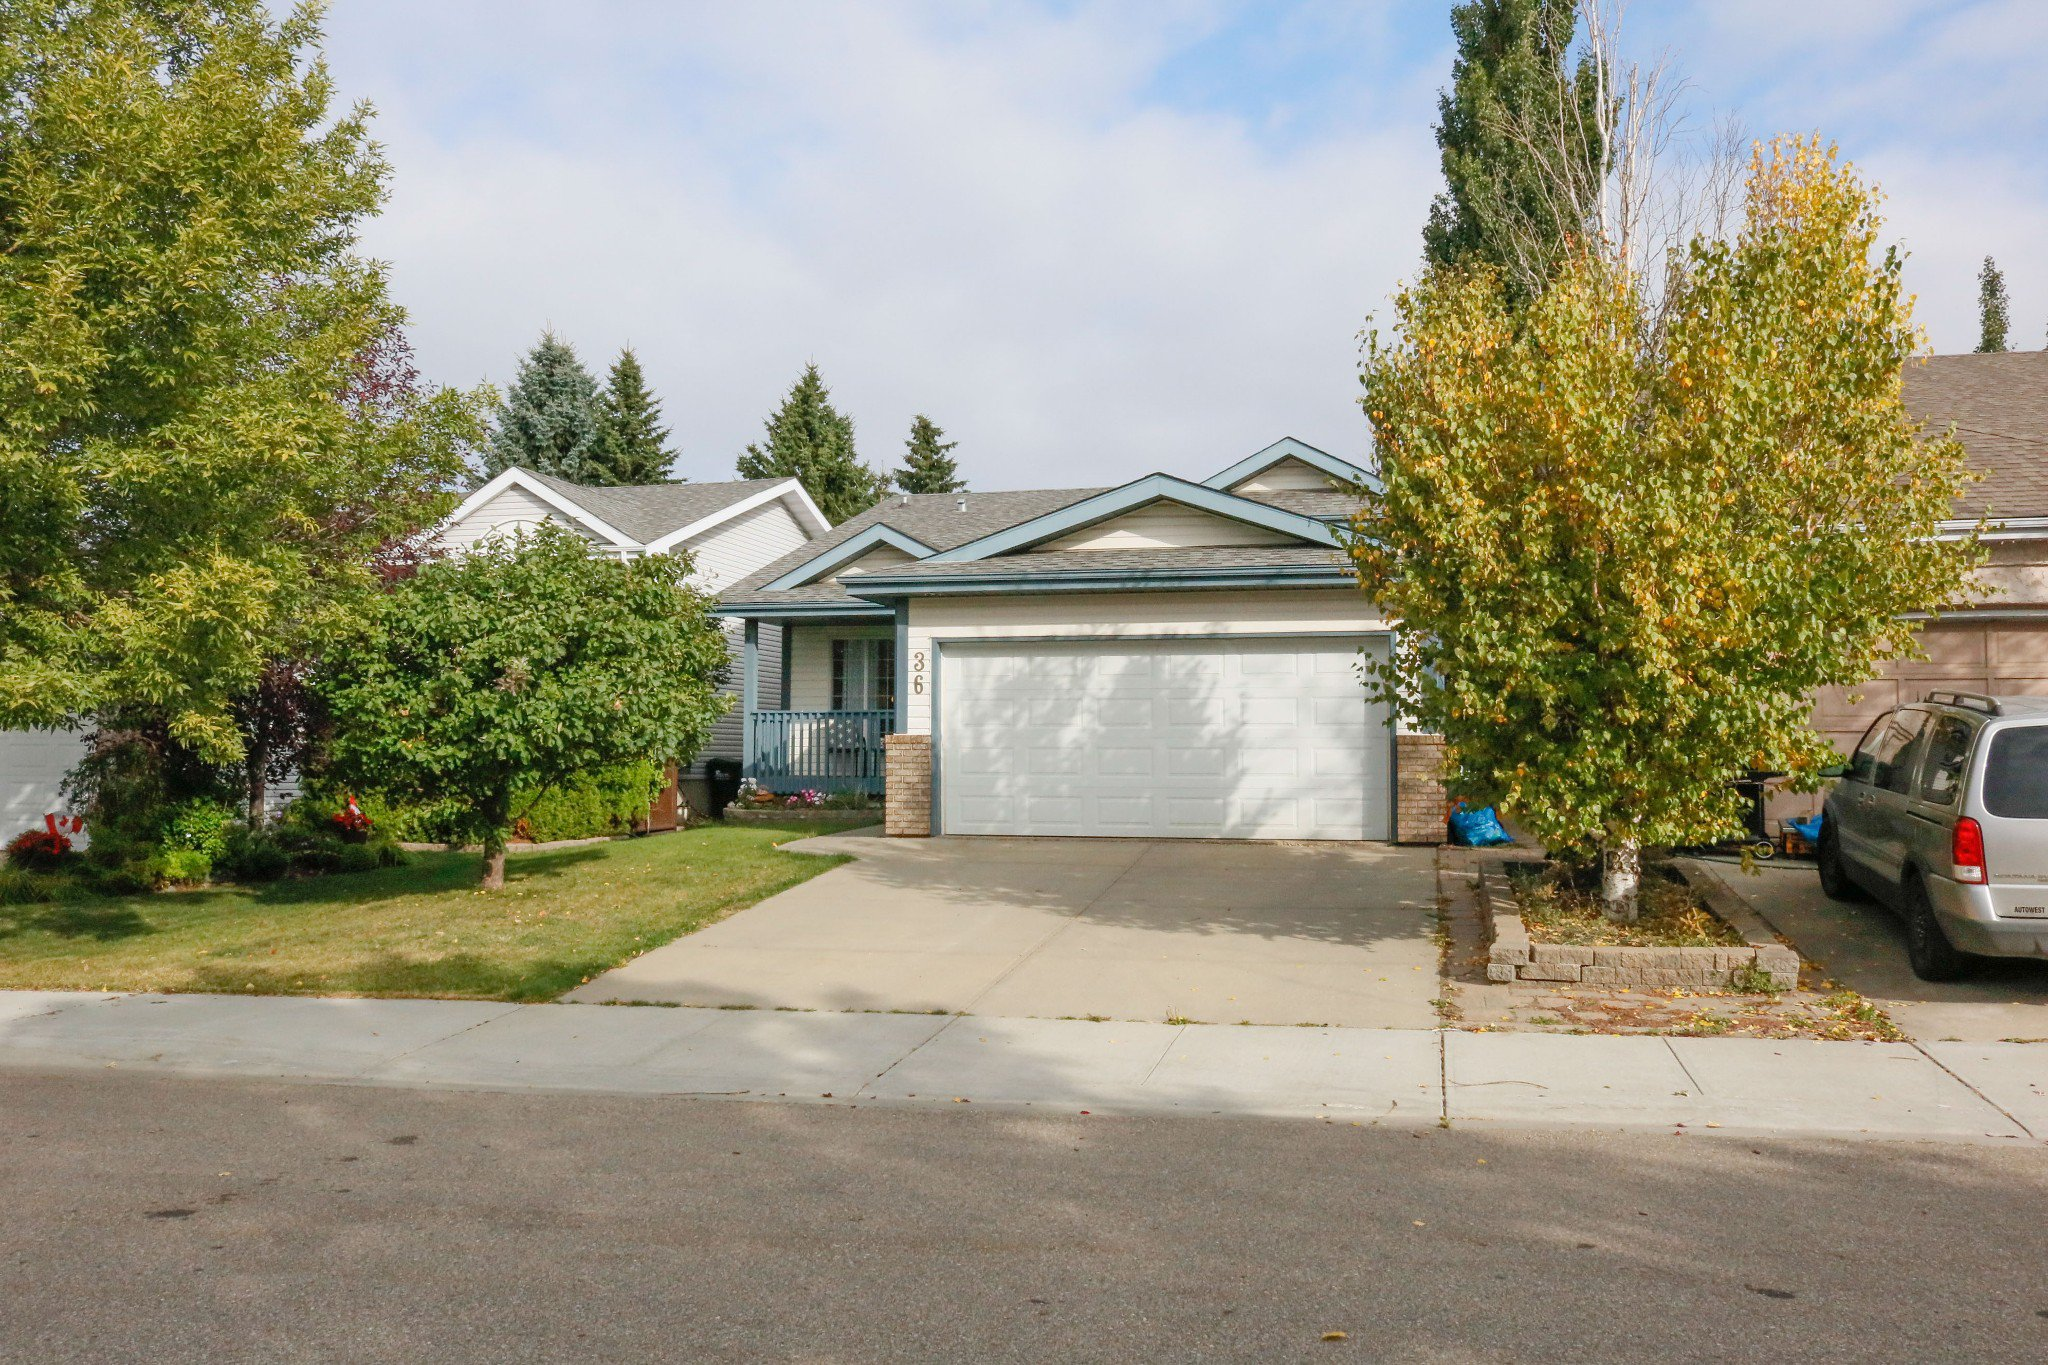 Main Photo: 36 Lilac Cr. in Sherwood Park: House for sale : MLS®# E4214947